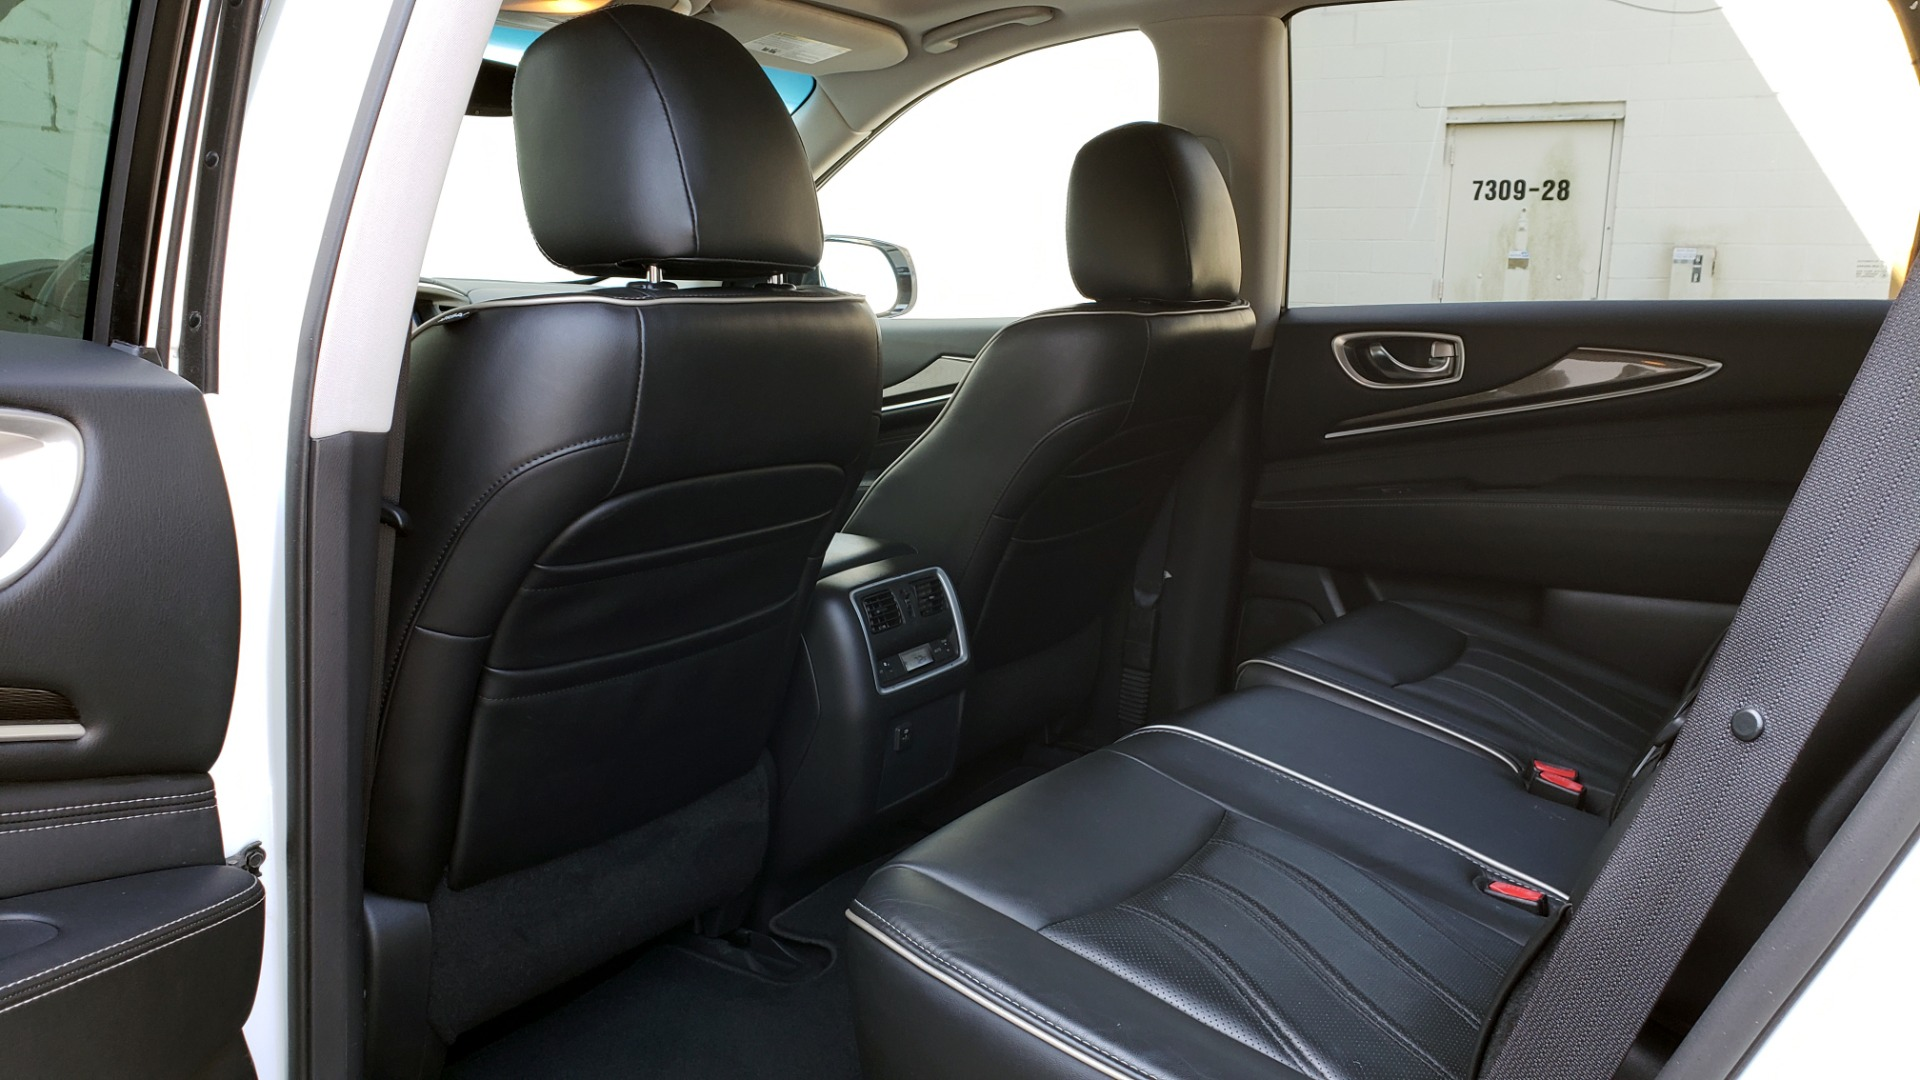 Used 2016 Infiniti QX60 AWD / 3.5L V6 / SUNROOF / HTD STS / 3-ROW / TOWING / REARVIEW for sale Sold at Formula Imports in Charlotte NC 28227 63